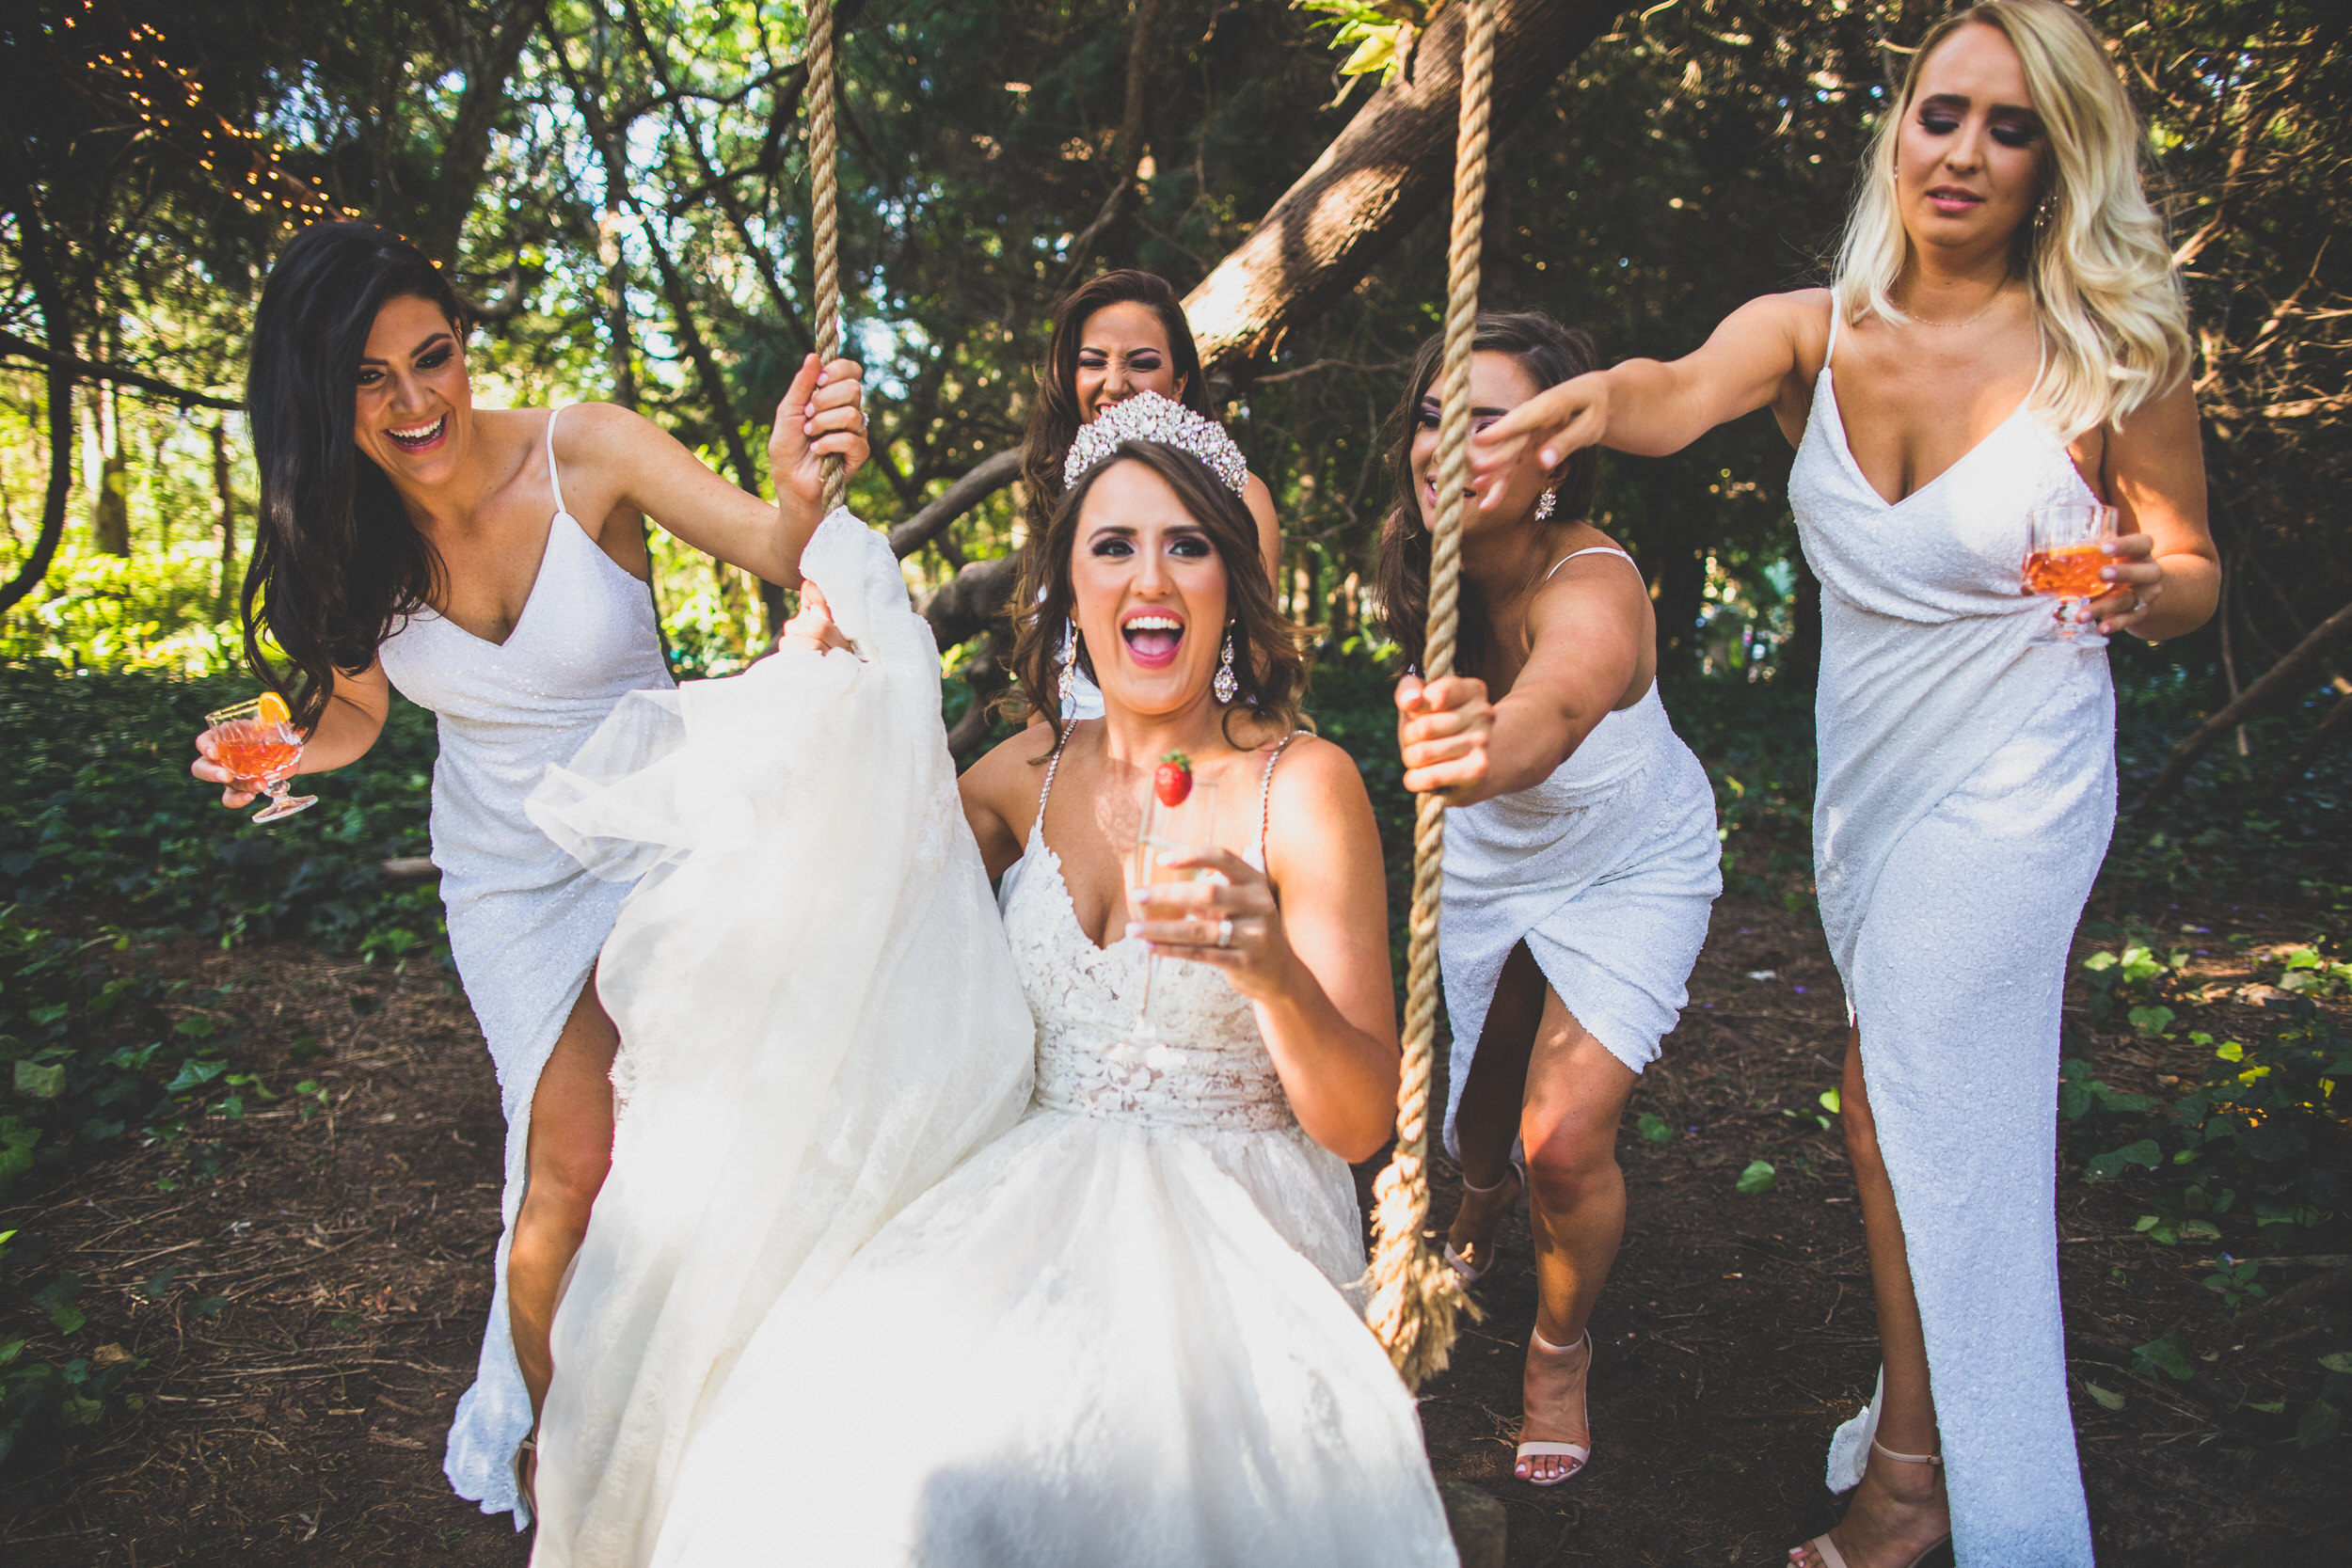 bridal party goals - swinging whilst drinking champagne